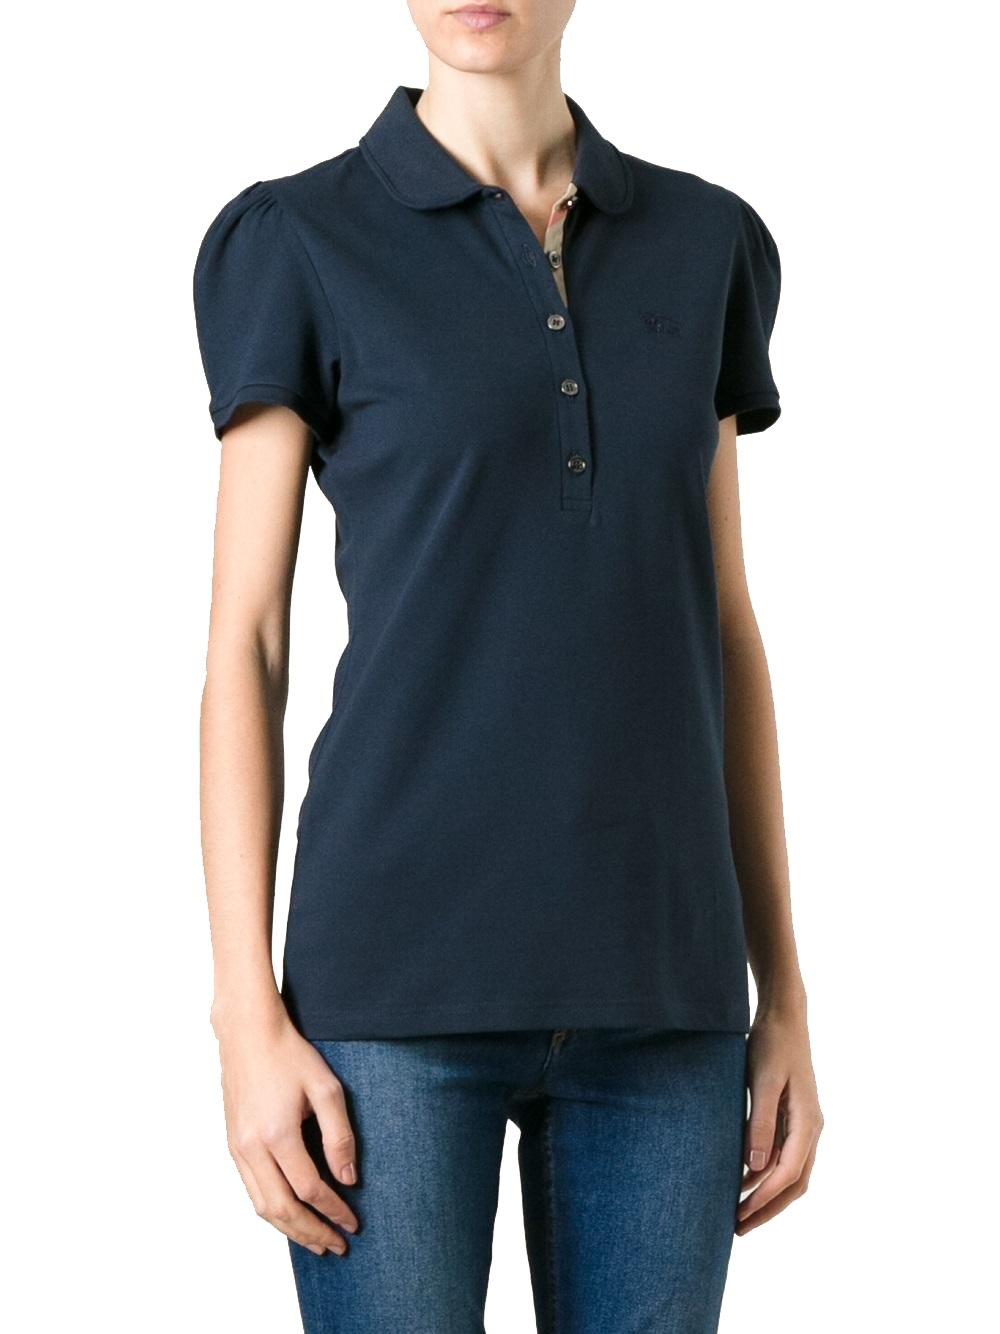 BURBERRY - Women's Polo YSM70254 - Blue (Dark Navy), S by BURBERRY (Image #1)